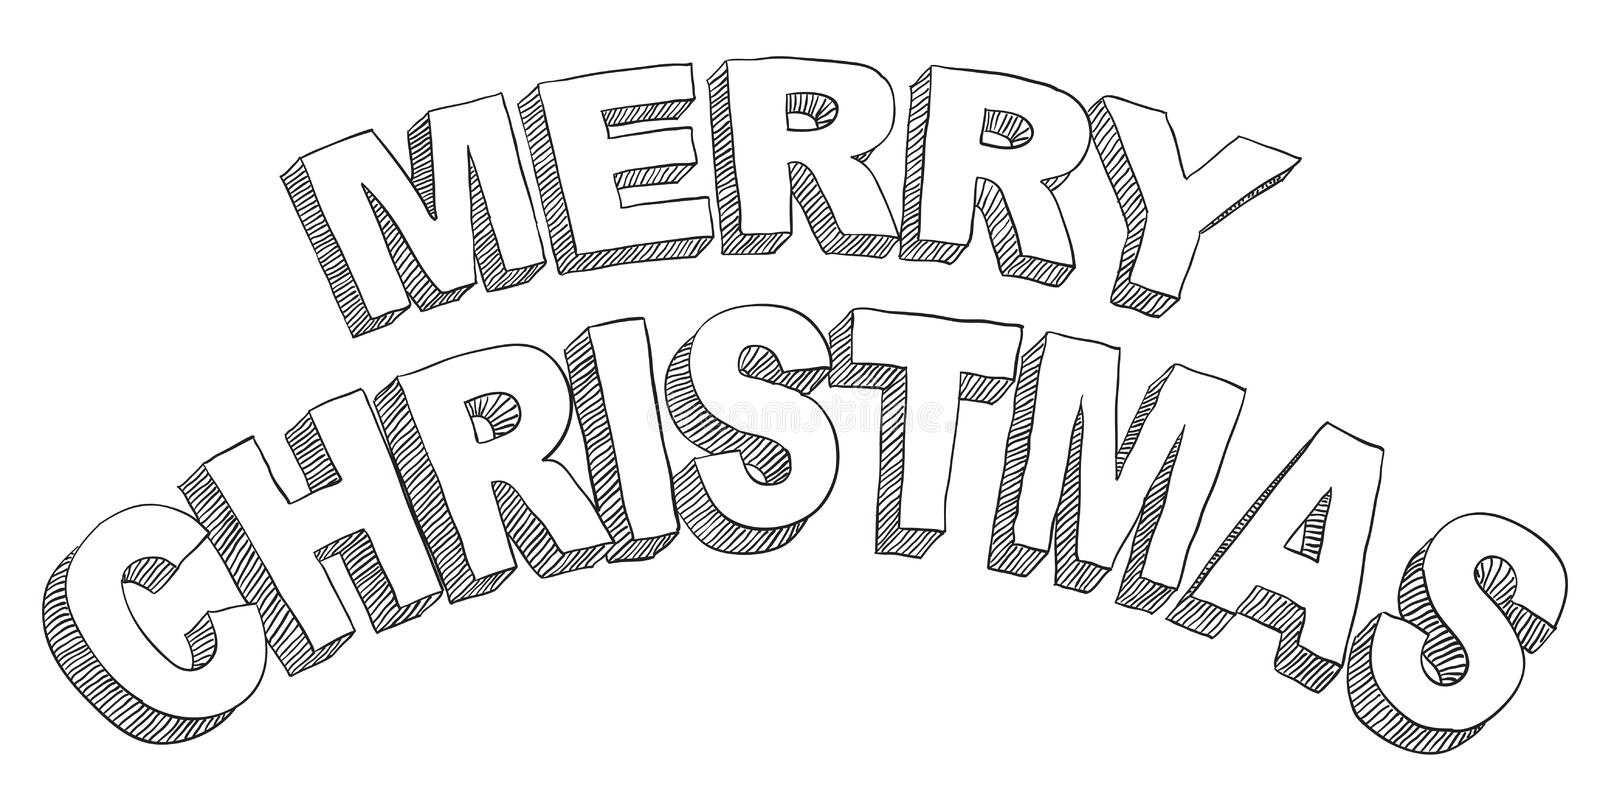 Download Merry christmas stock vector. Image of letters, letter - 26611488